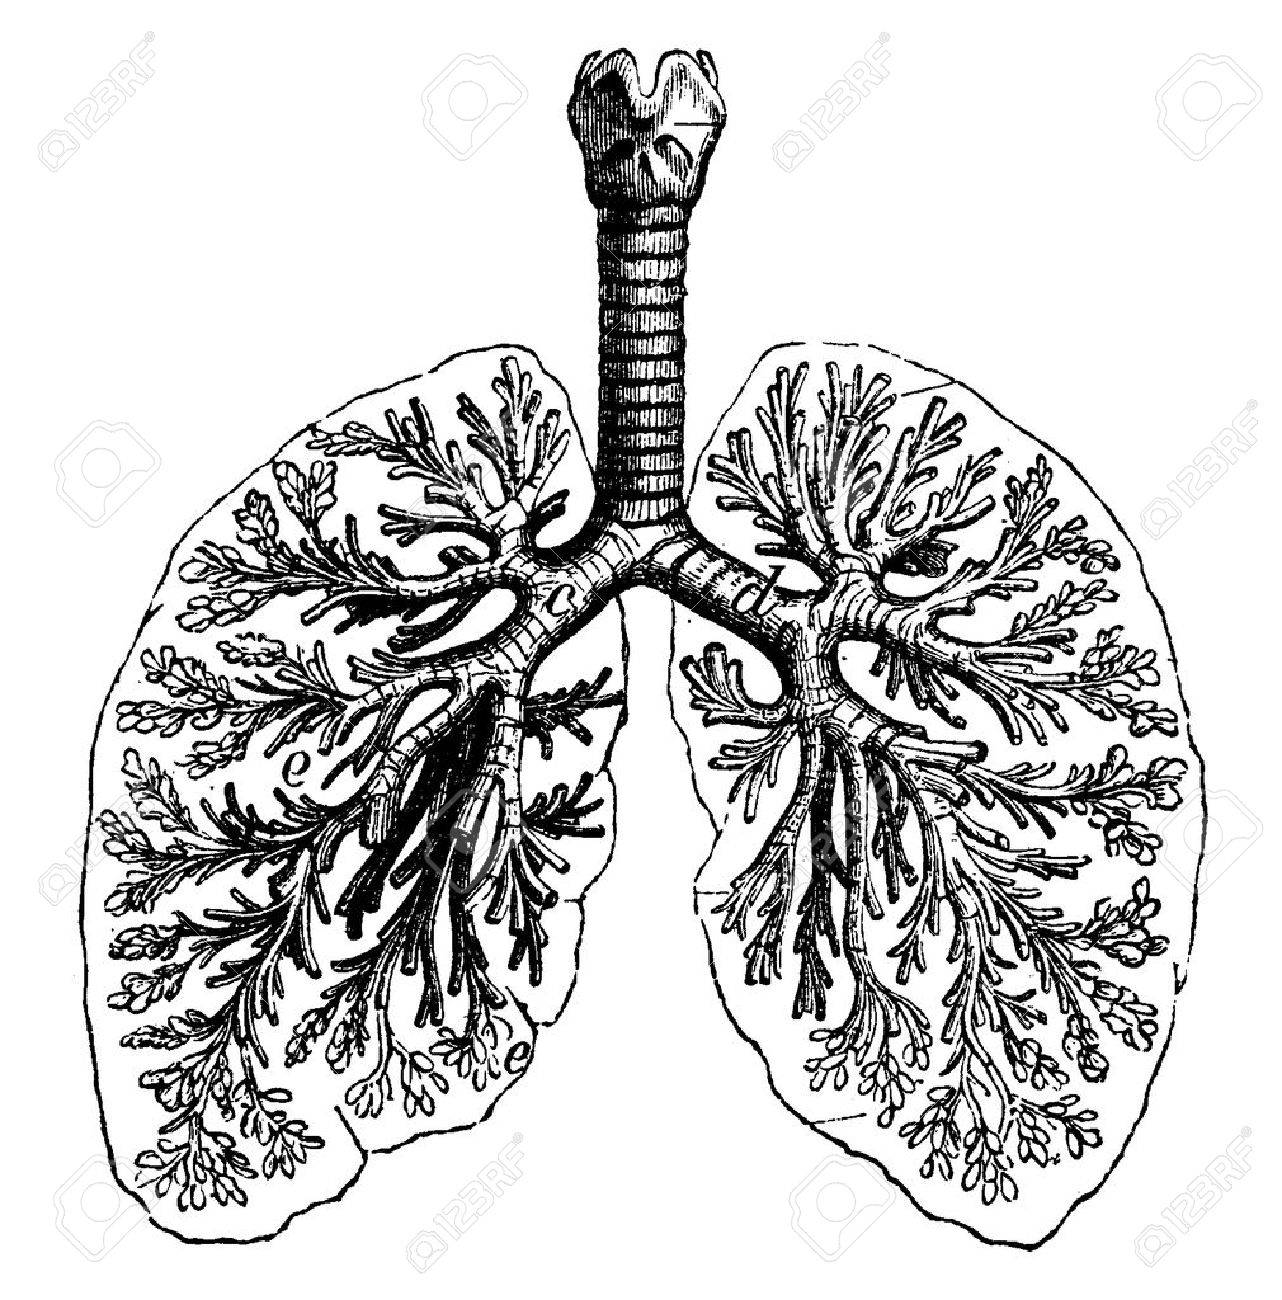 Diagrams of two human lungs vintage engraved illustration la